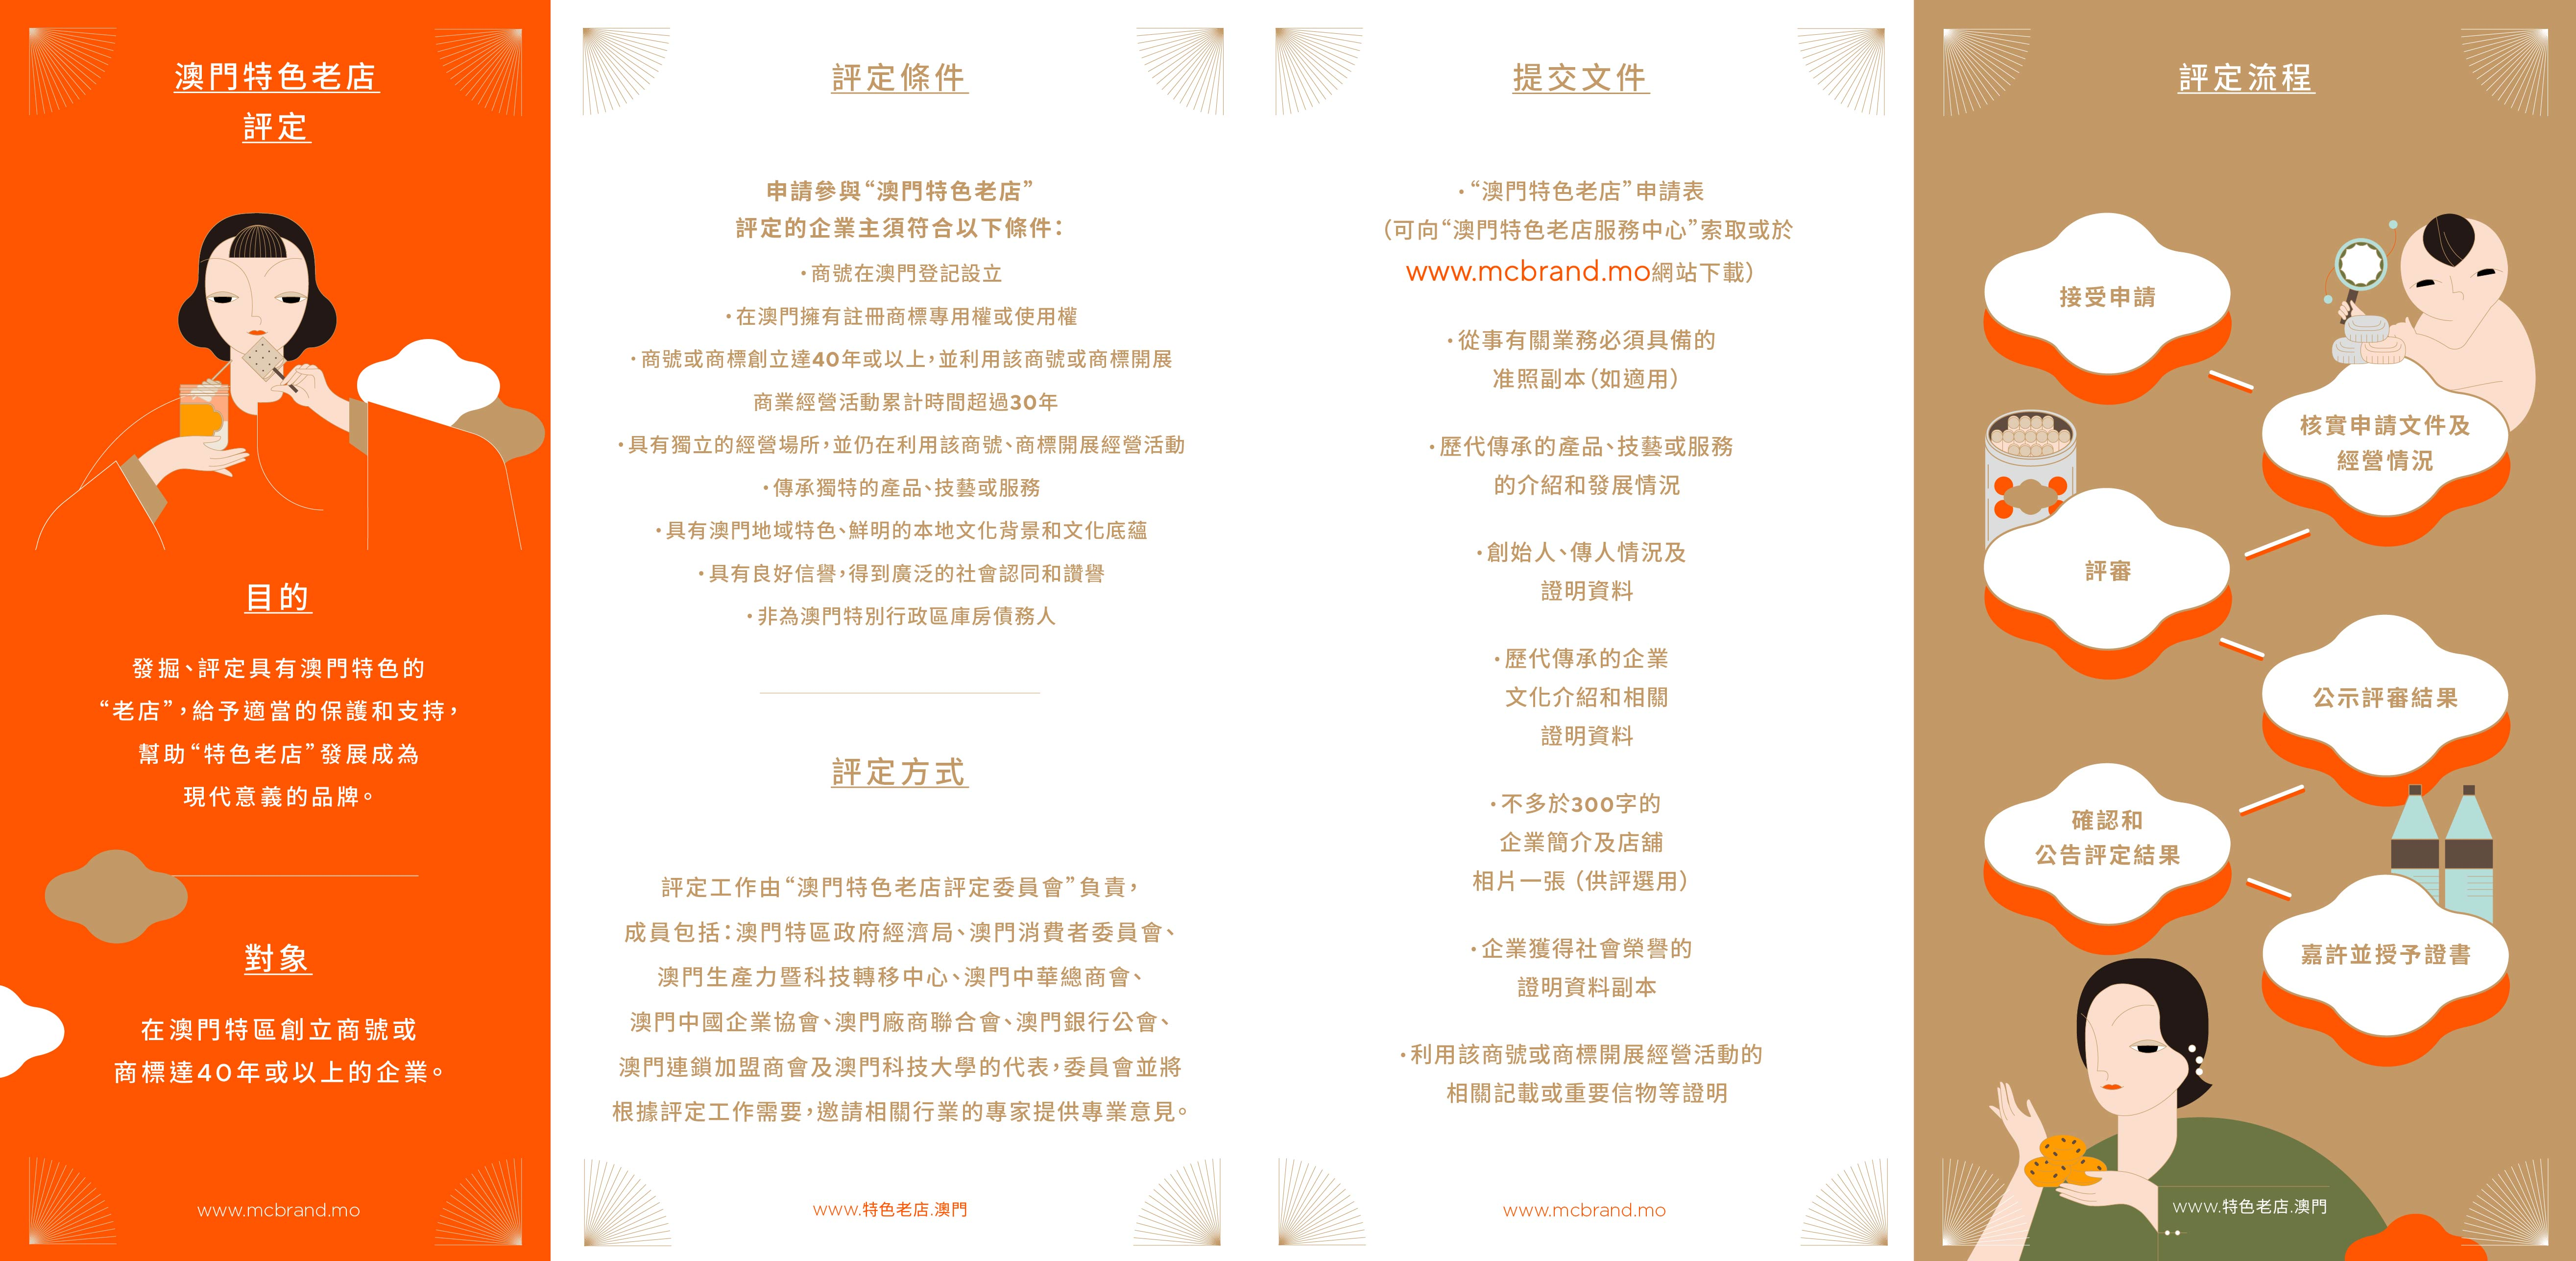 180715-MACAO CLASSIC Brand-Leaflet-output-2-02.jpg